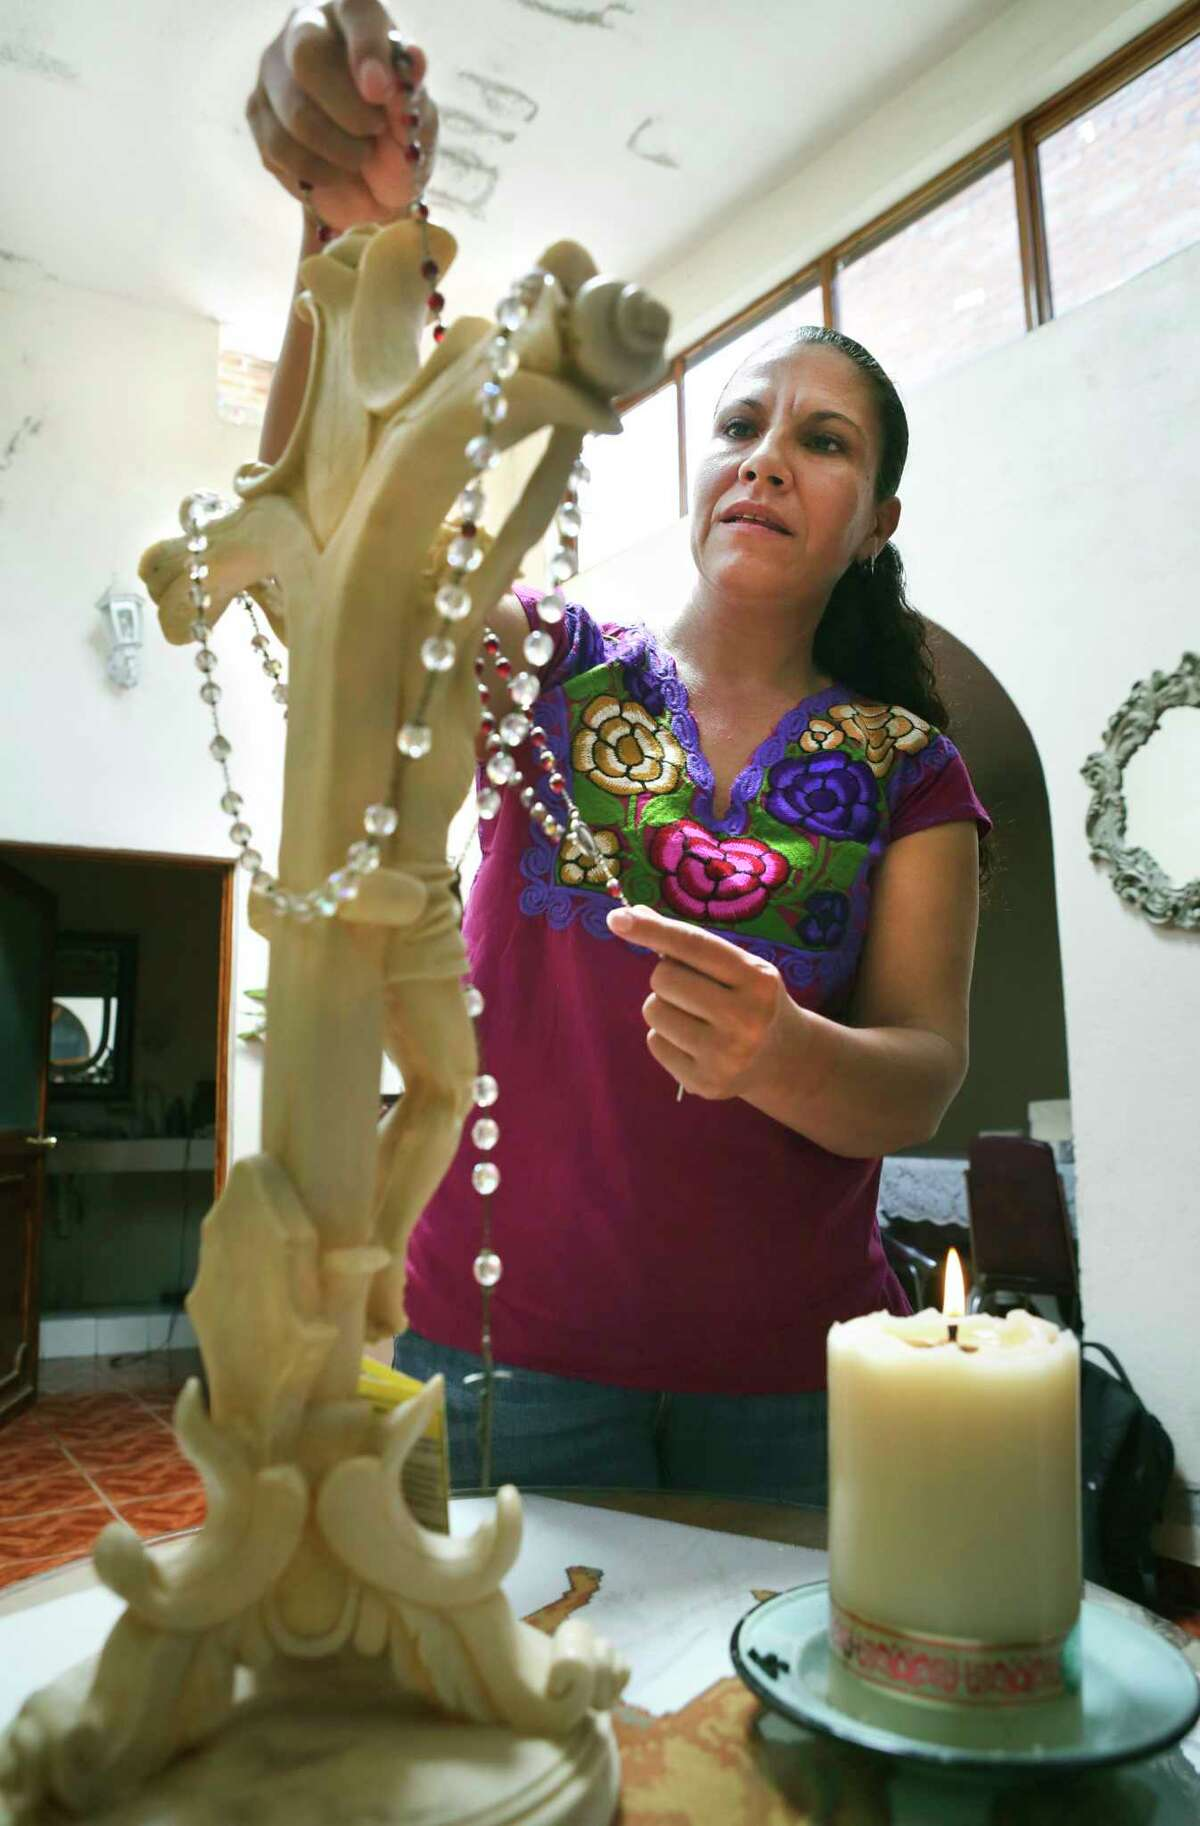 Maria Guadalupe Martinez Vargas, mother of Jose, who made it out of the human smuggling trailer, prays daily for her son with her rosary at a small shrine in her home in Calvillo, Mexico, a town west of Aguascalientes.